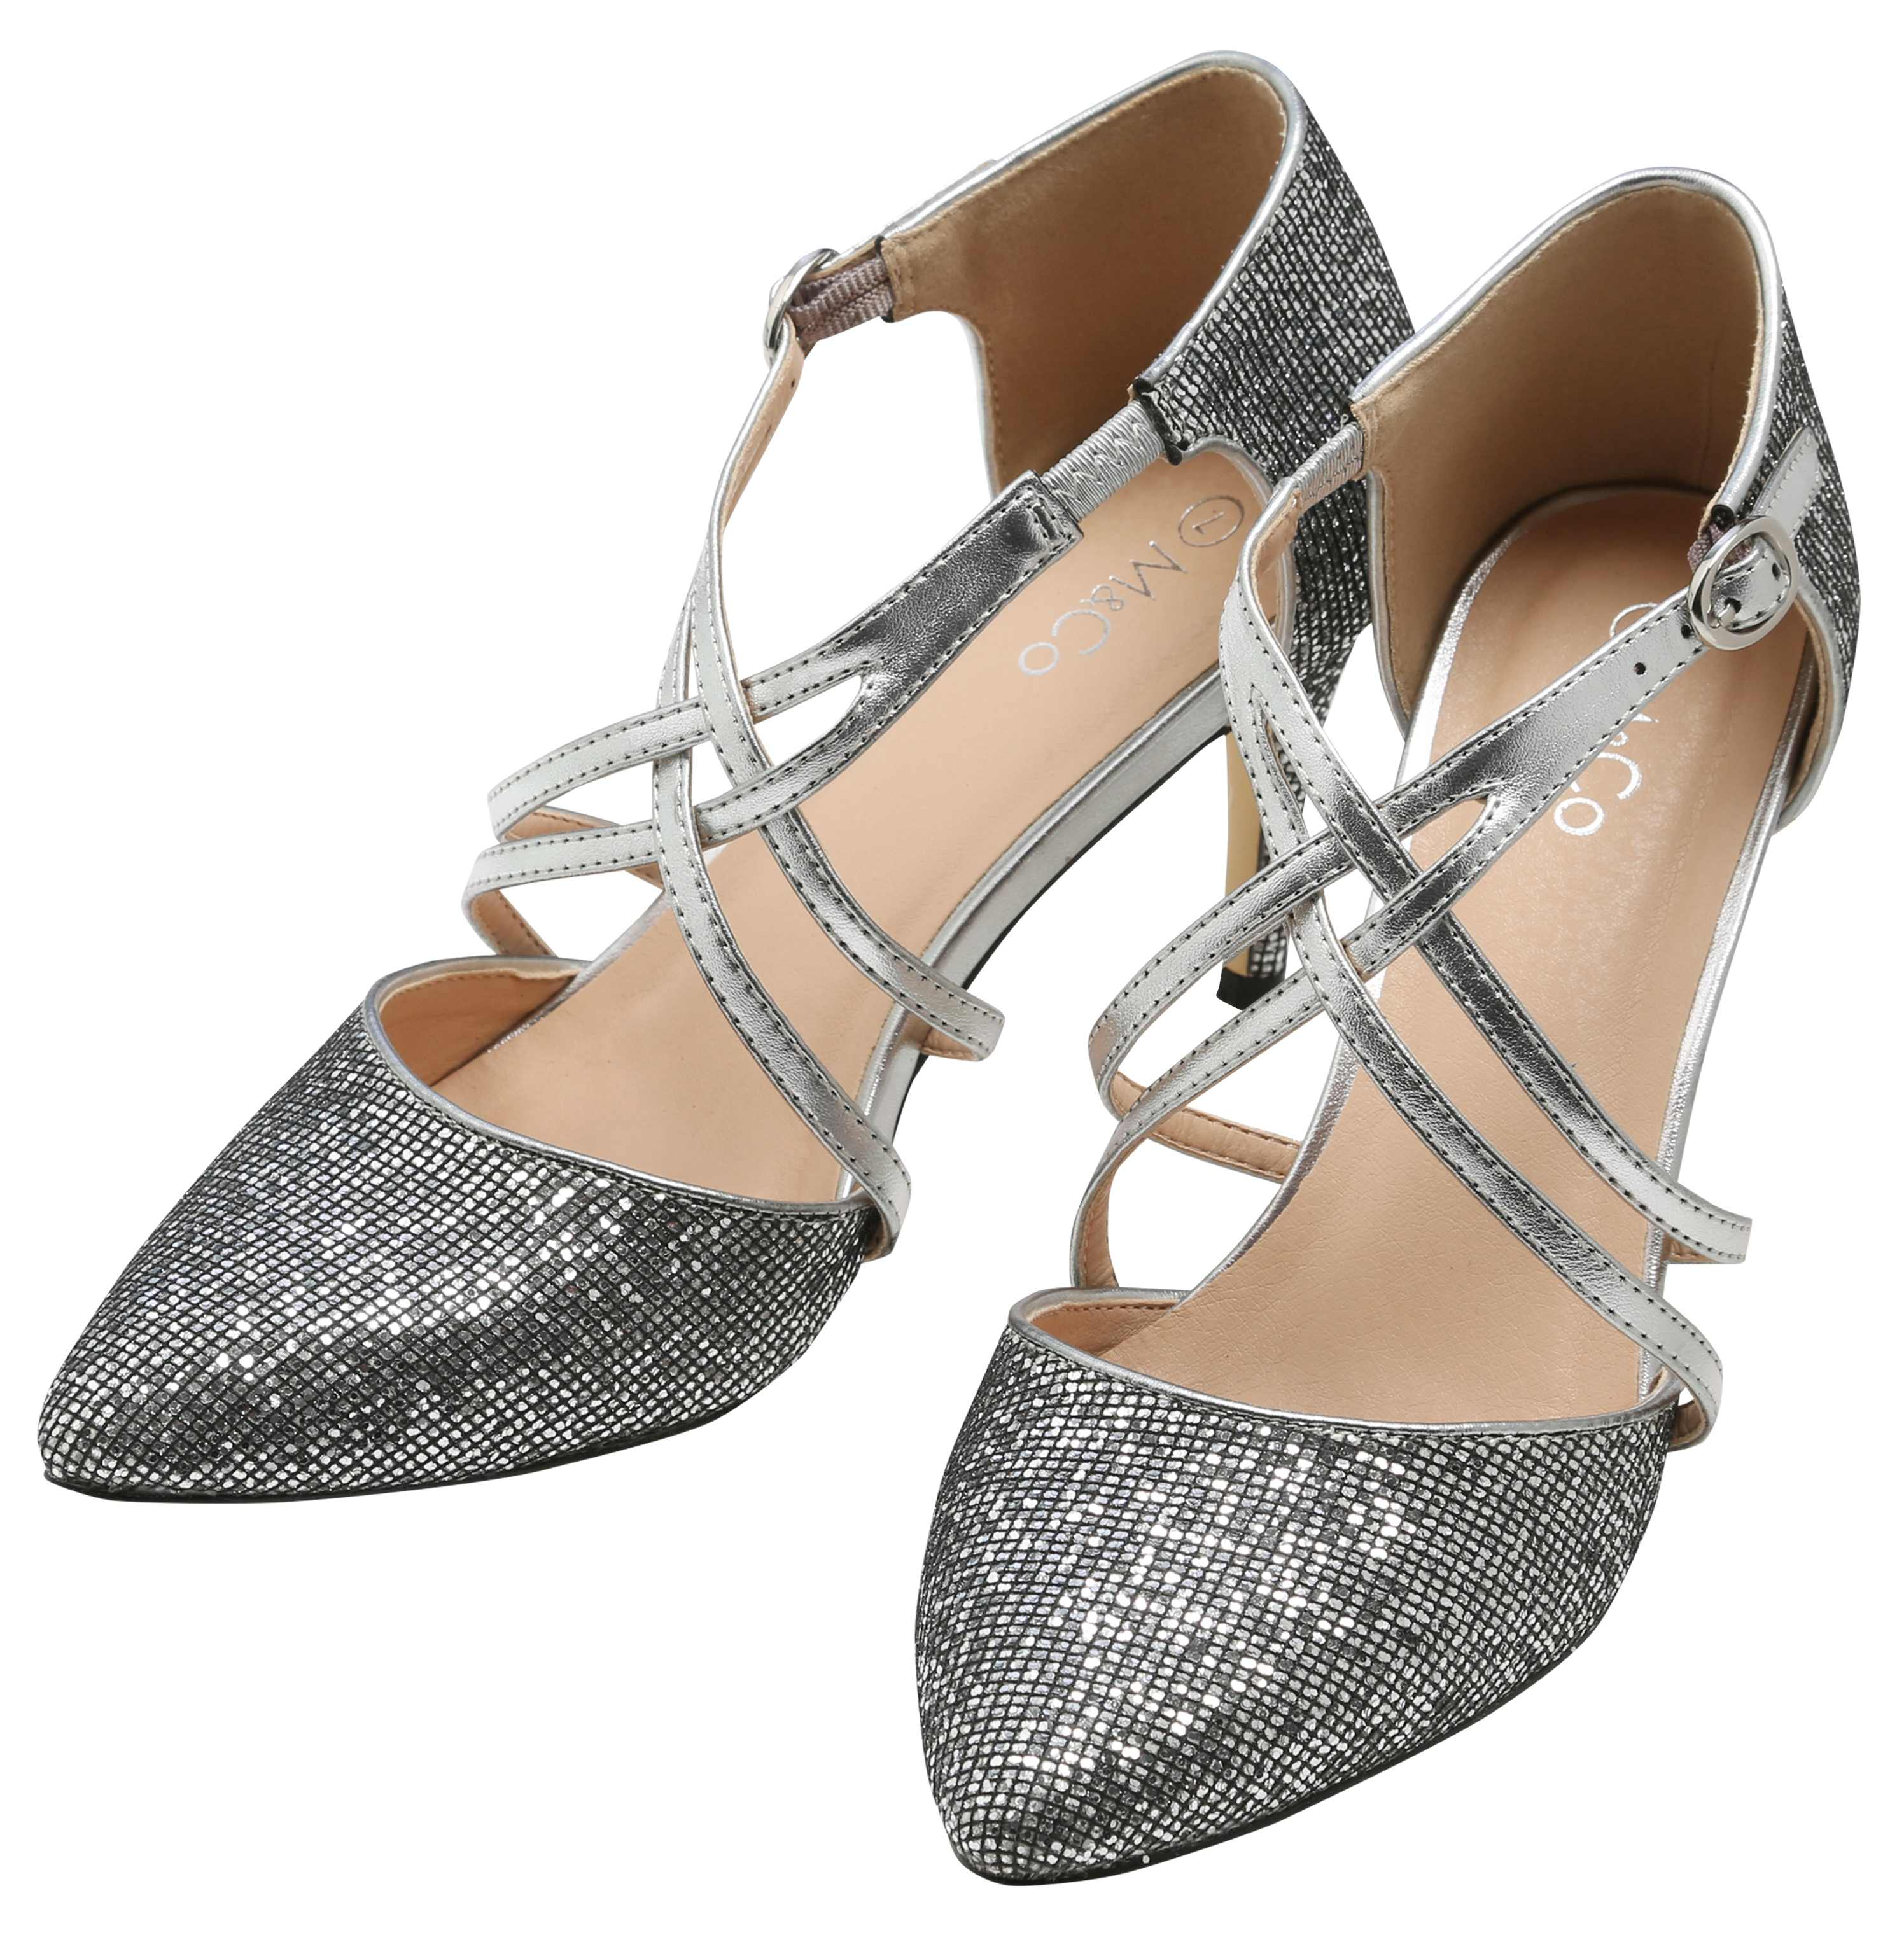 M&Co Sparkly Heeled Courts